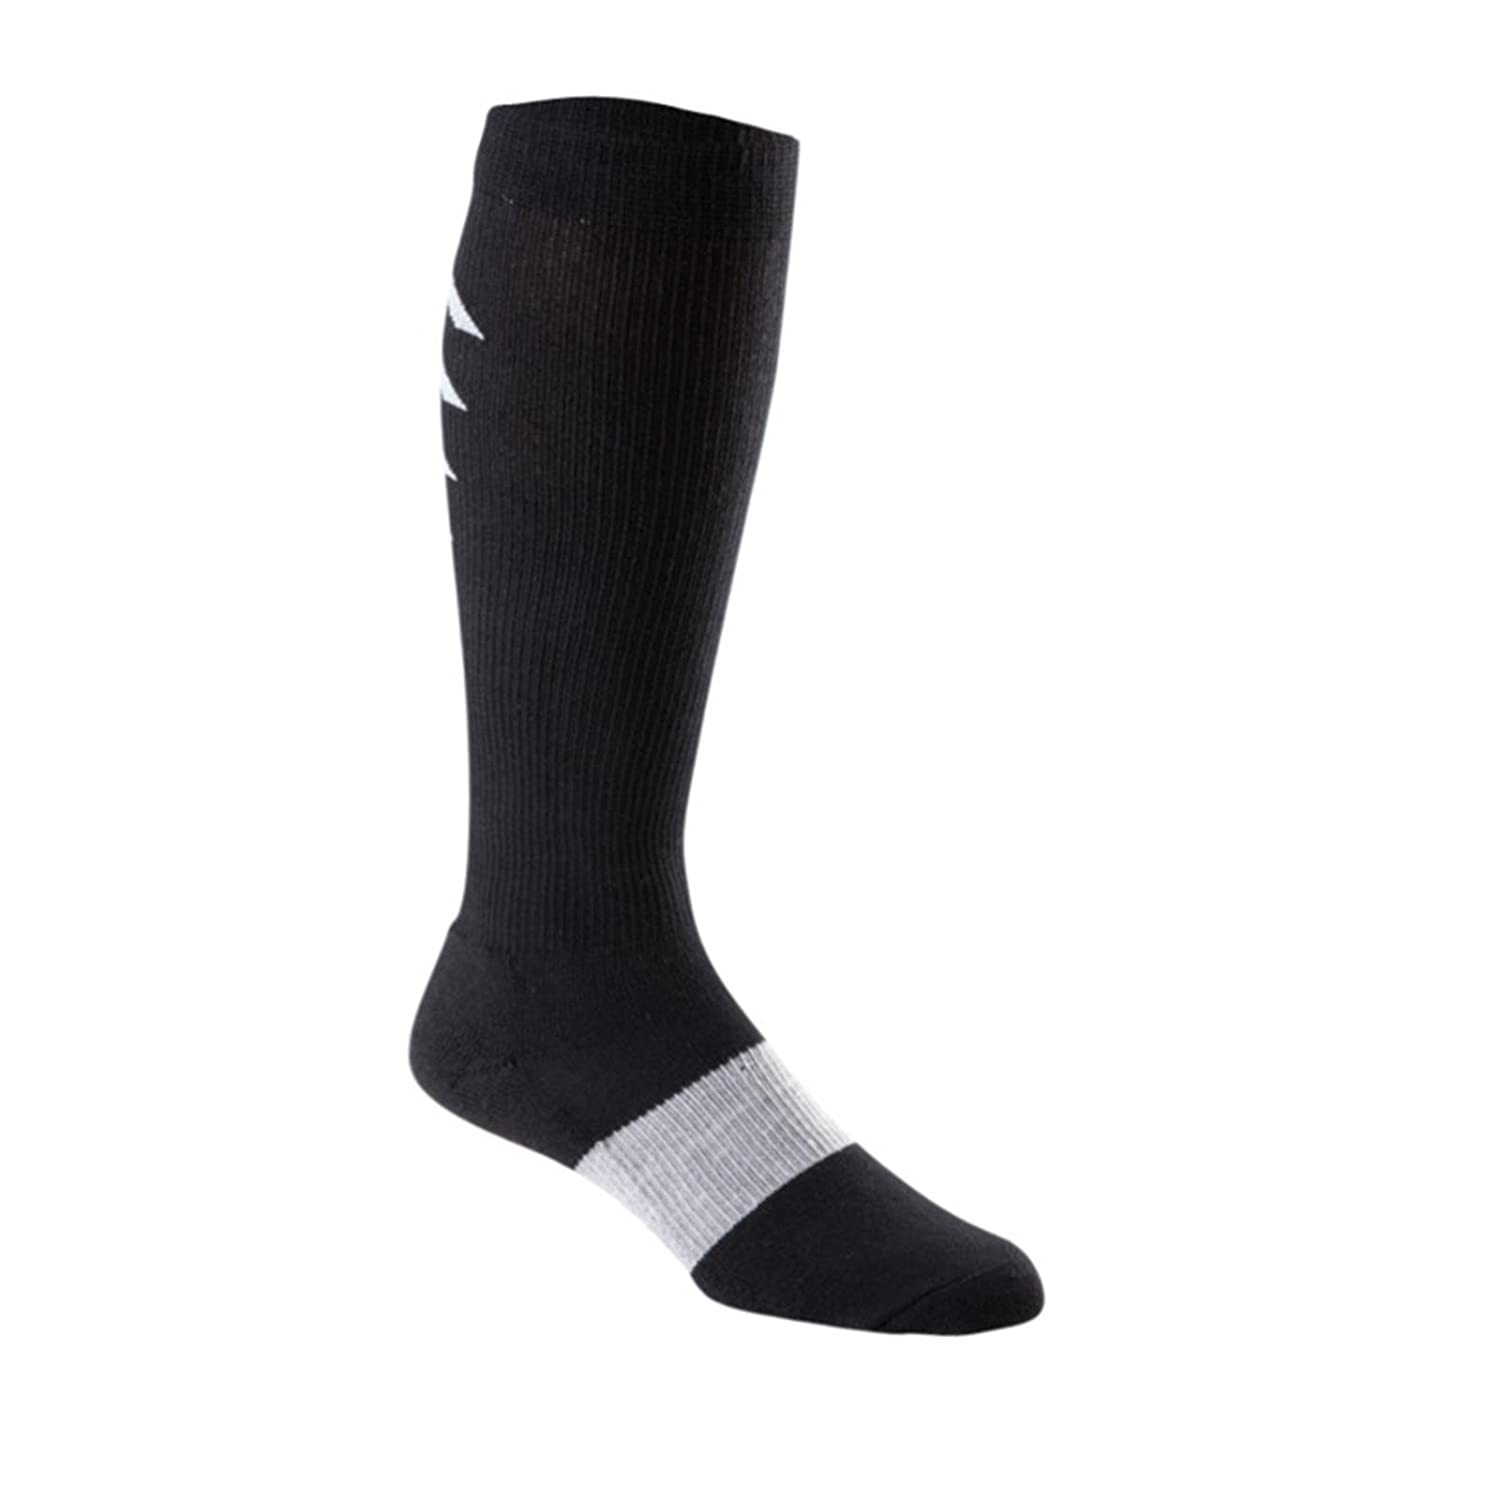 Amazon.com : Womens Active Therapy- Athletic Recovery, A, Black : Compression Socks : Sports & Outdoors